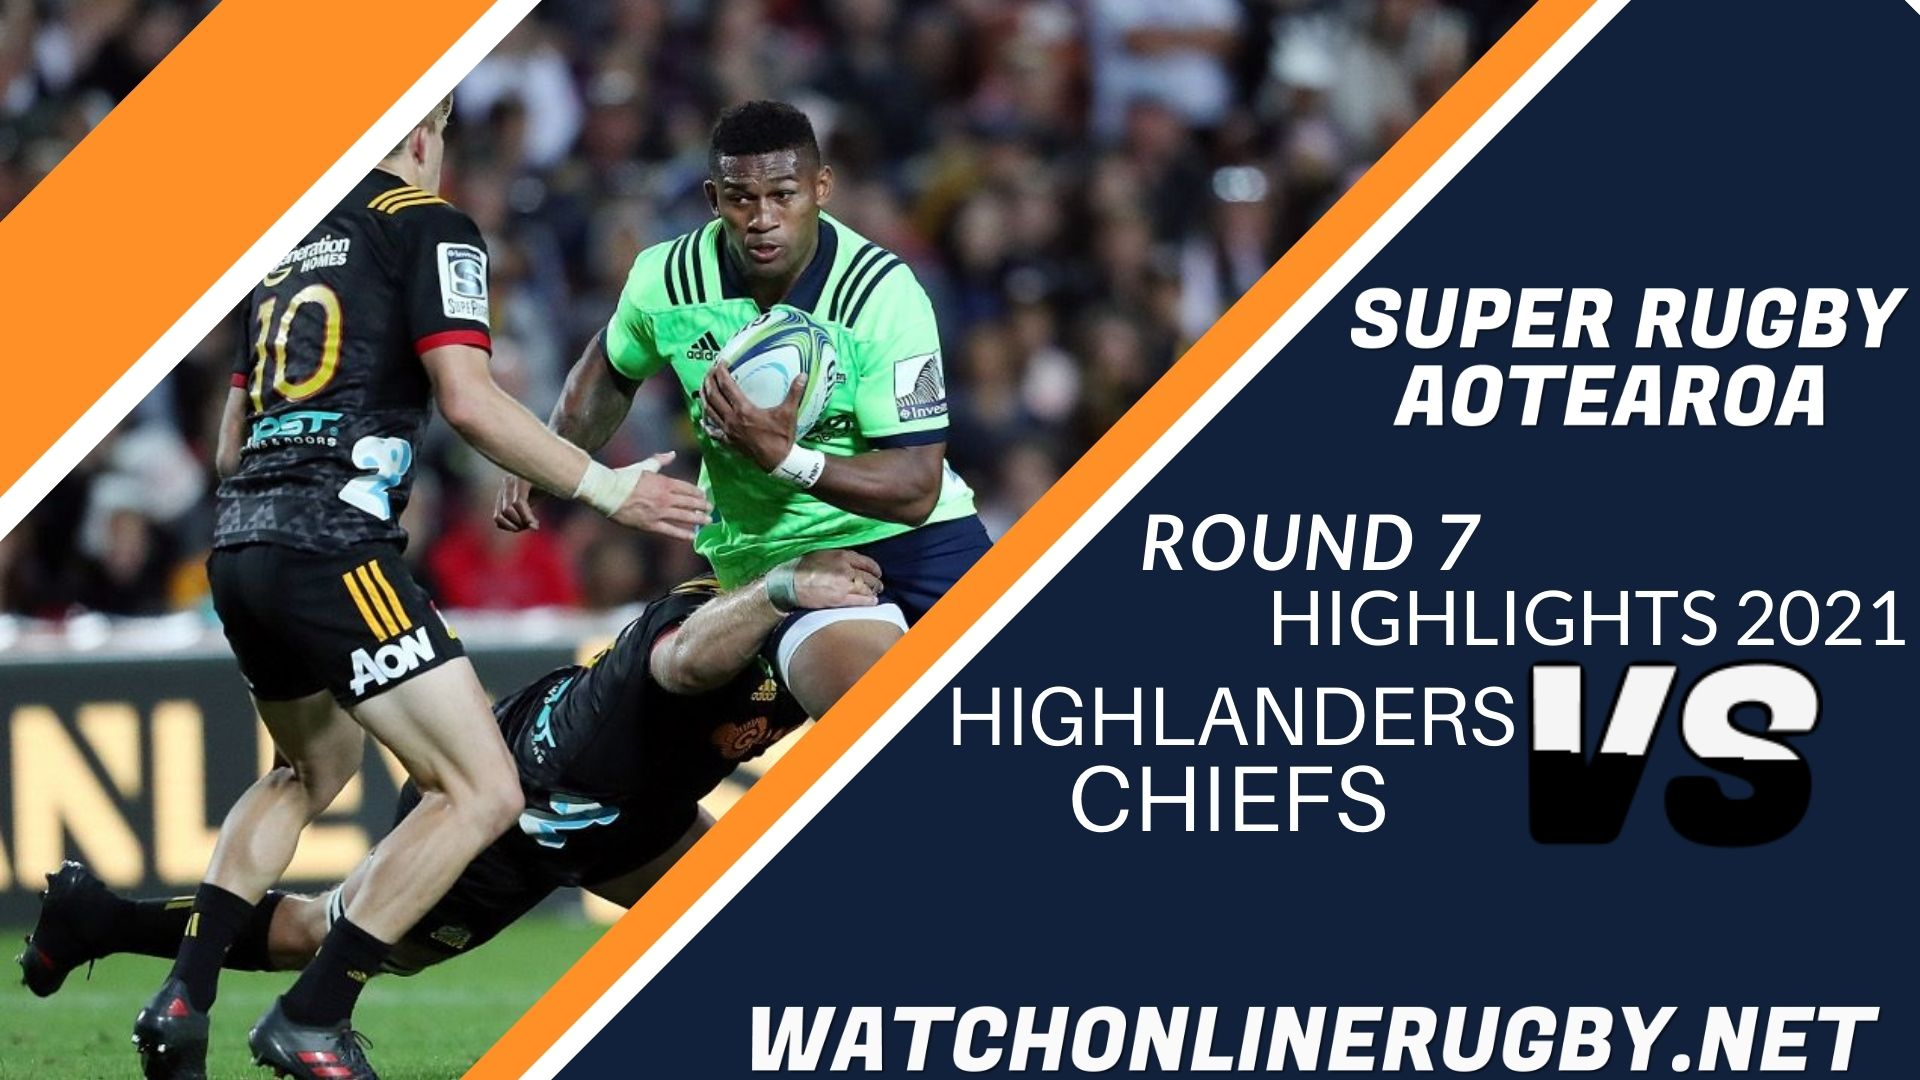 Highlanders Vs Chiefs Super Rugby Aotearoa 2021 RD 7